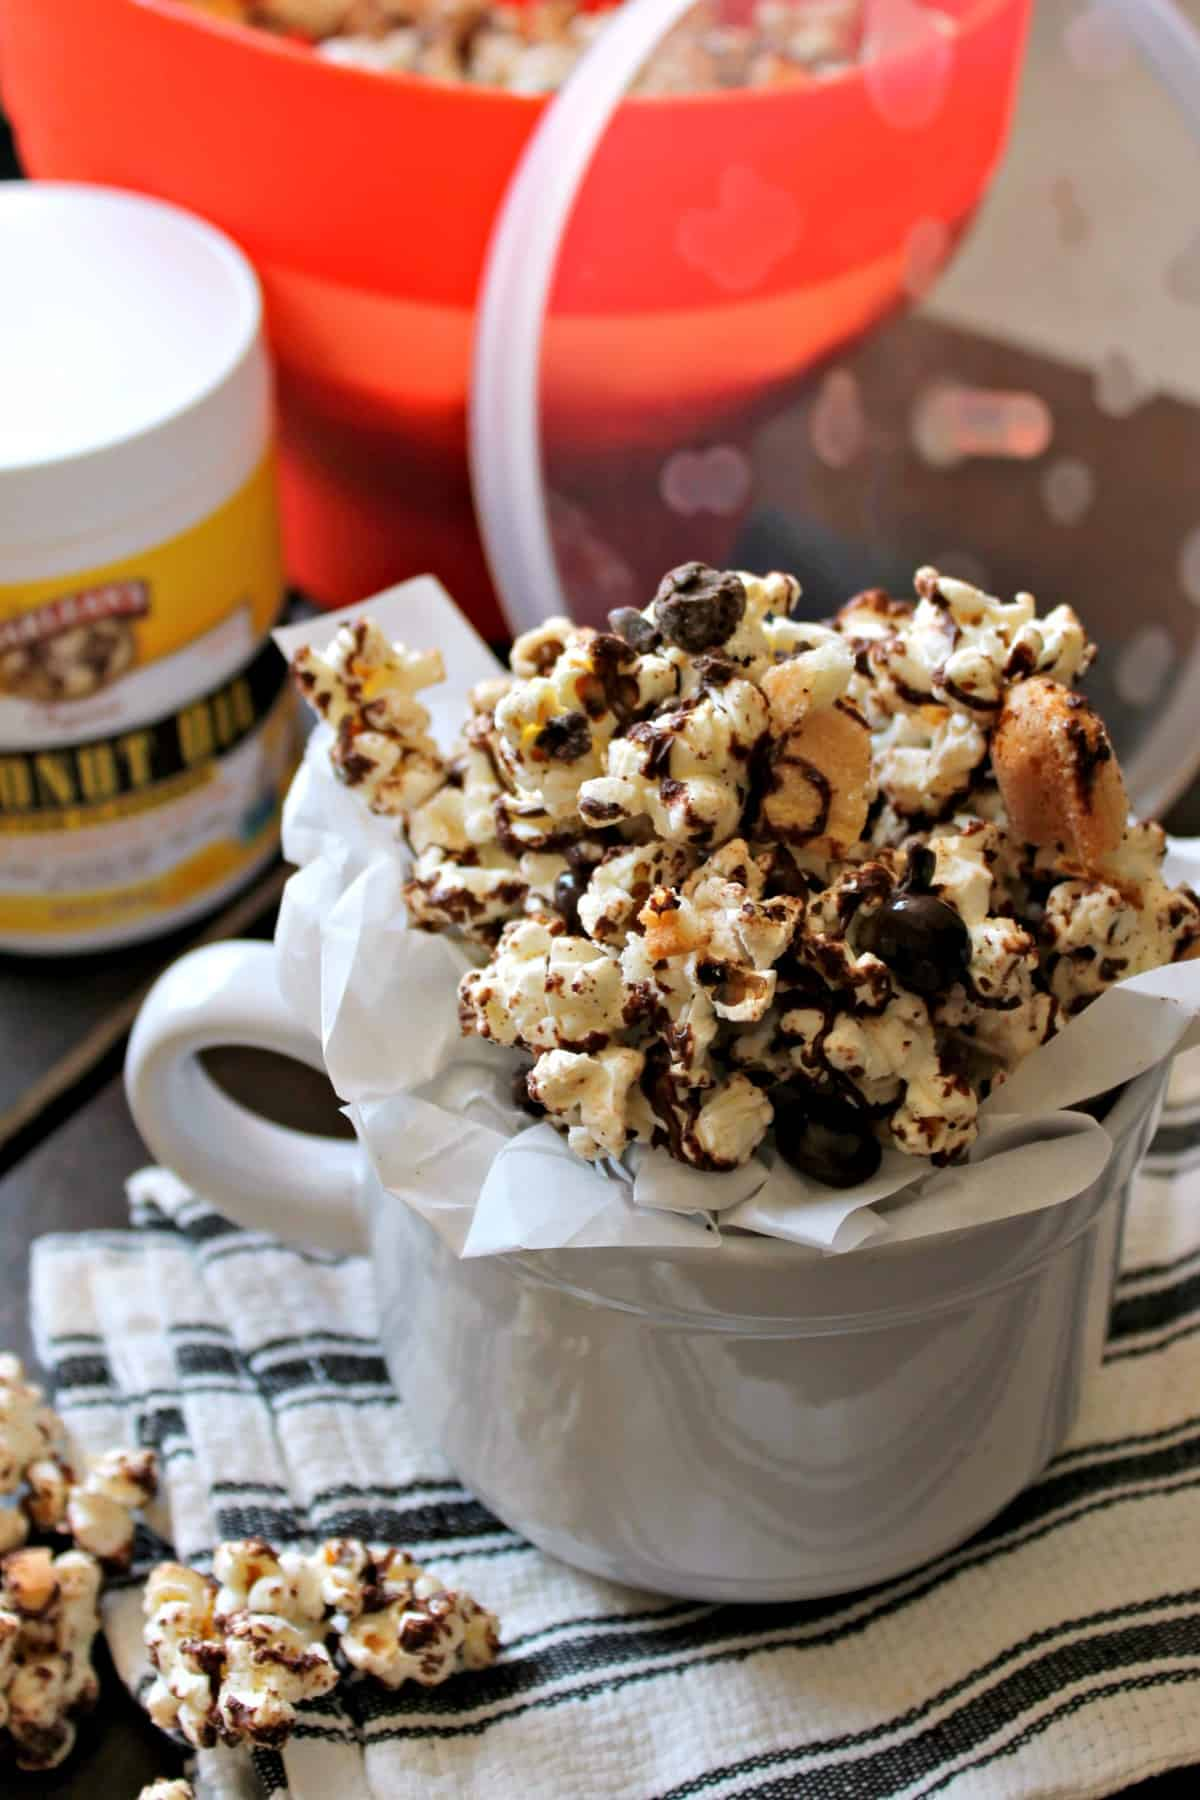 Tiramisu Popcorn! Chocolate, coffee and lady finger cookie bits infuse this popcorn treat with flavors of the classic, Italian dessert in snackable form!